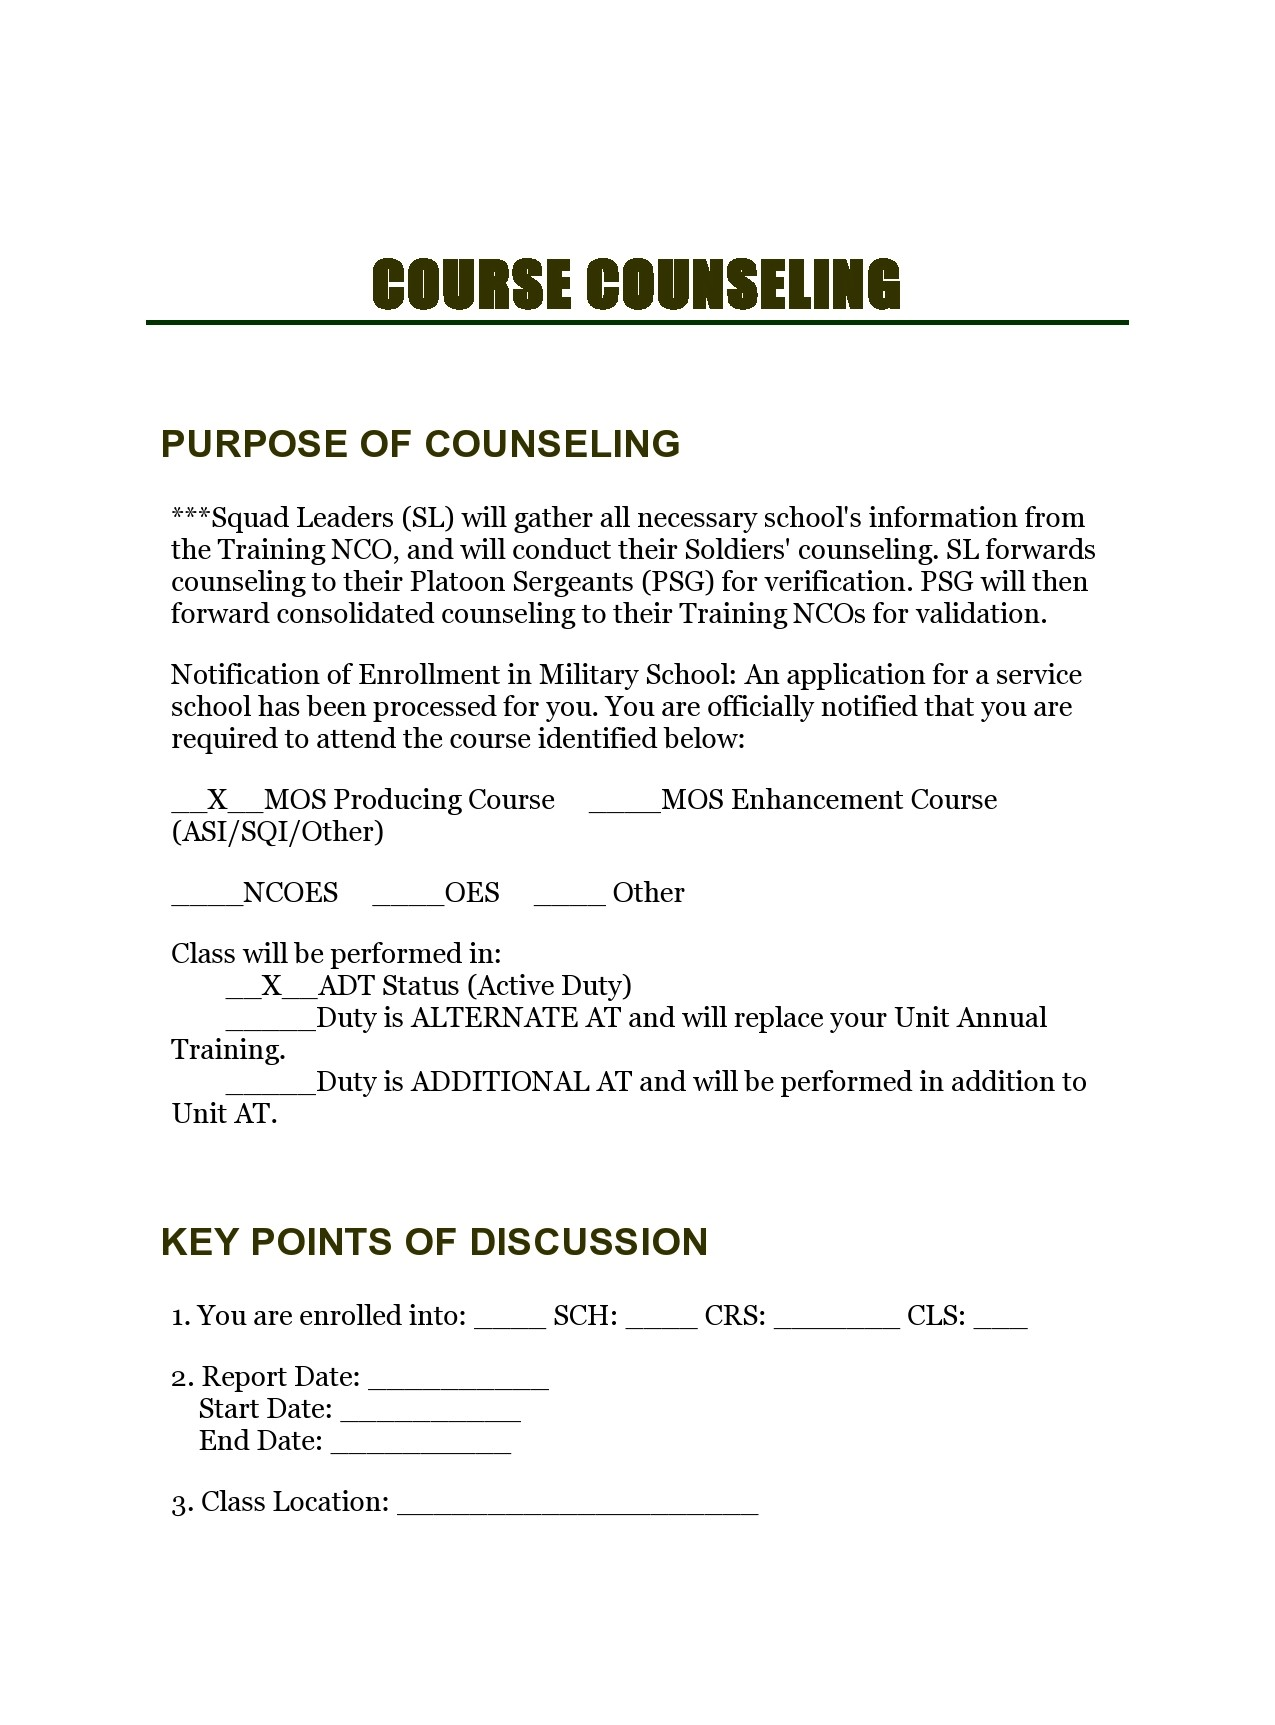 Free army counseling form 10